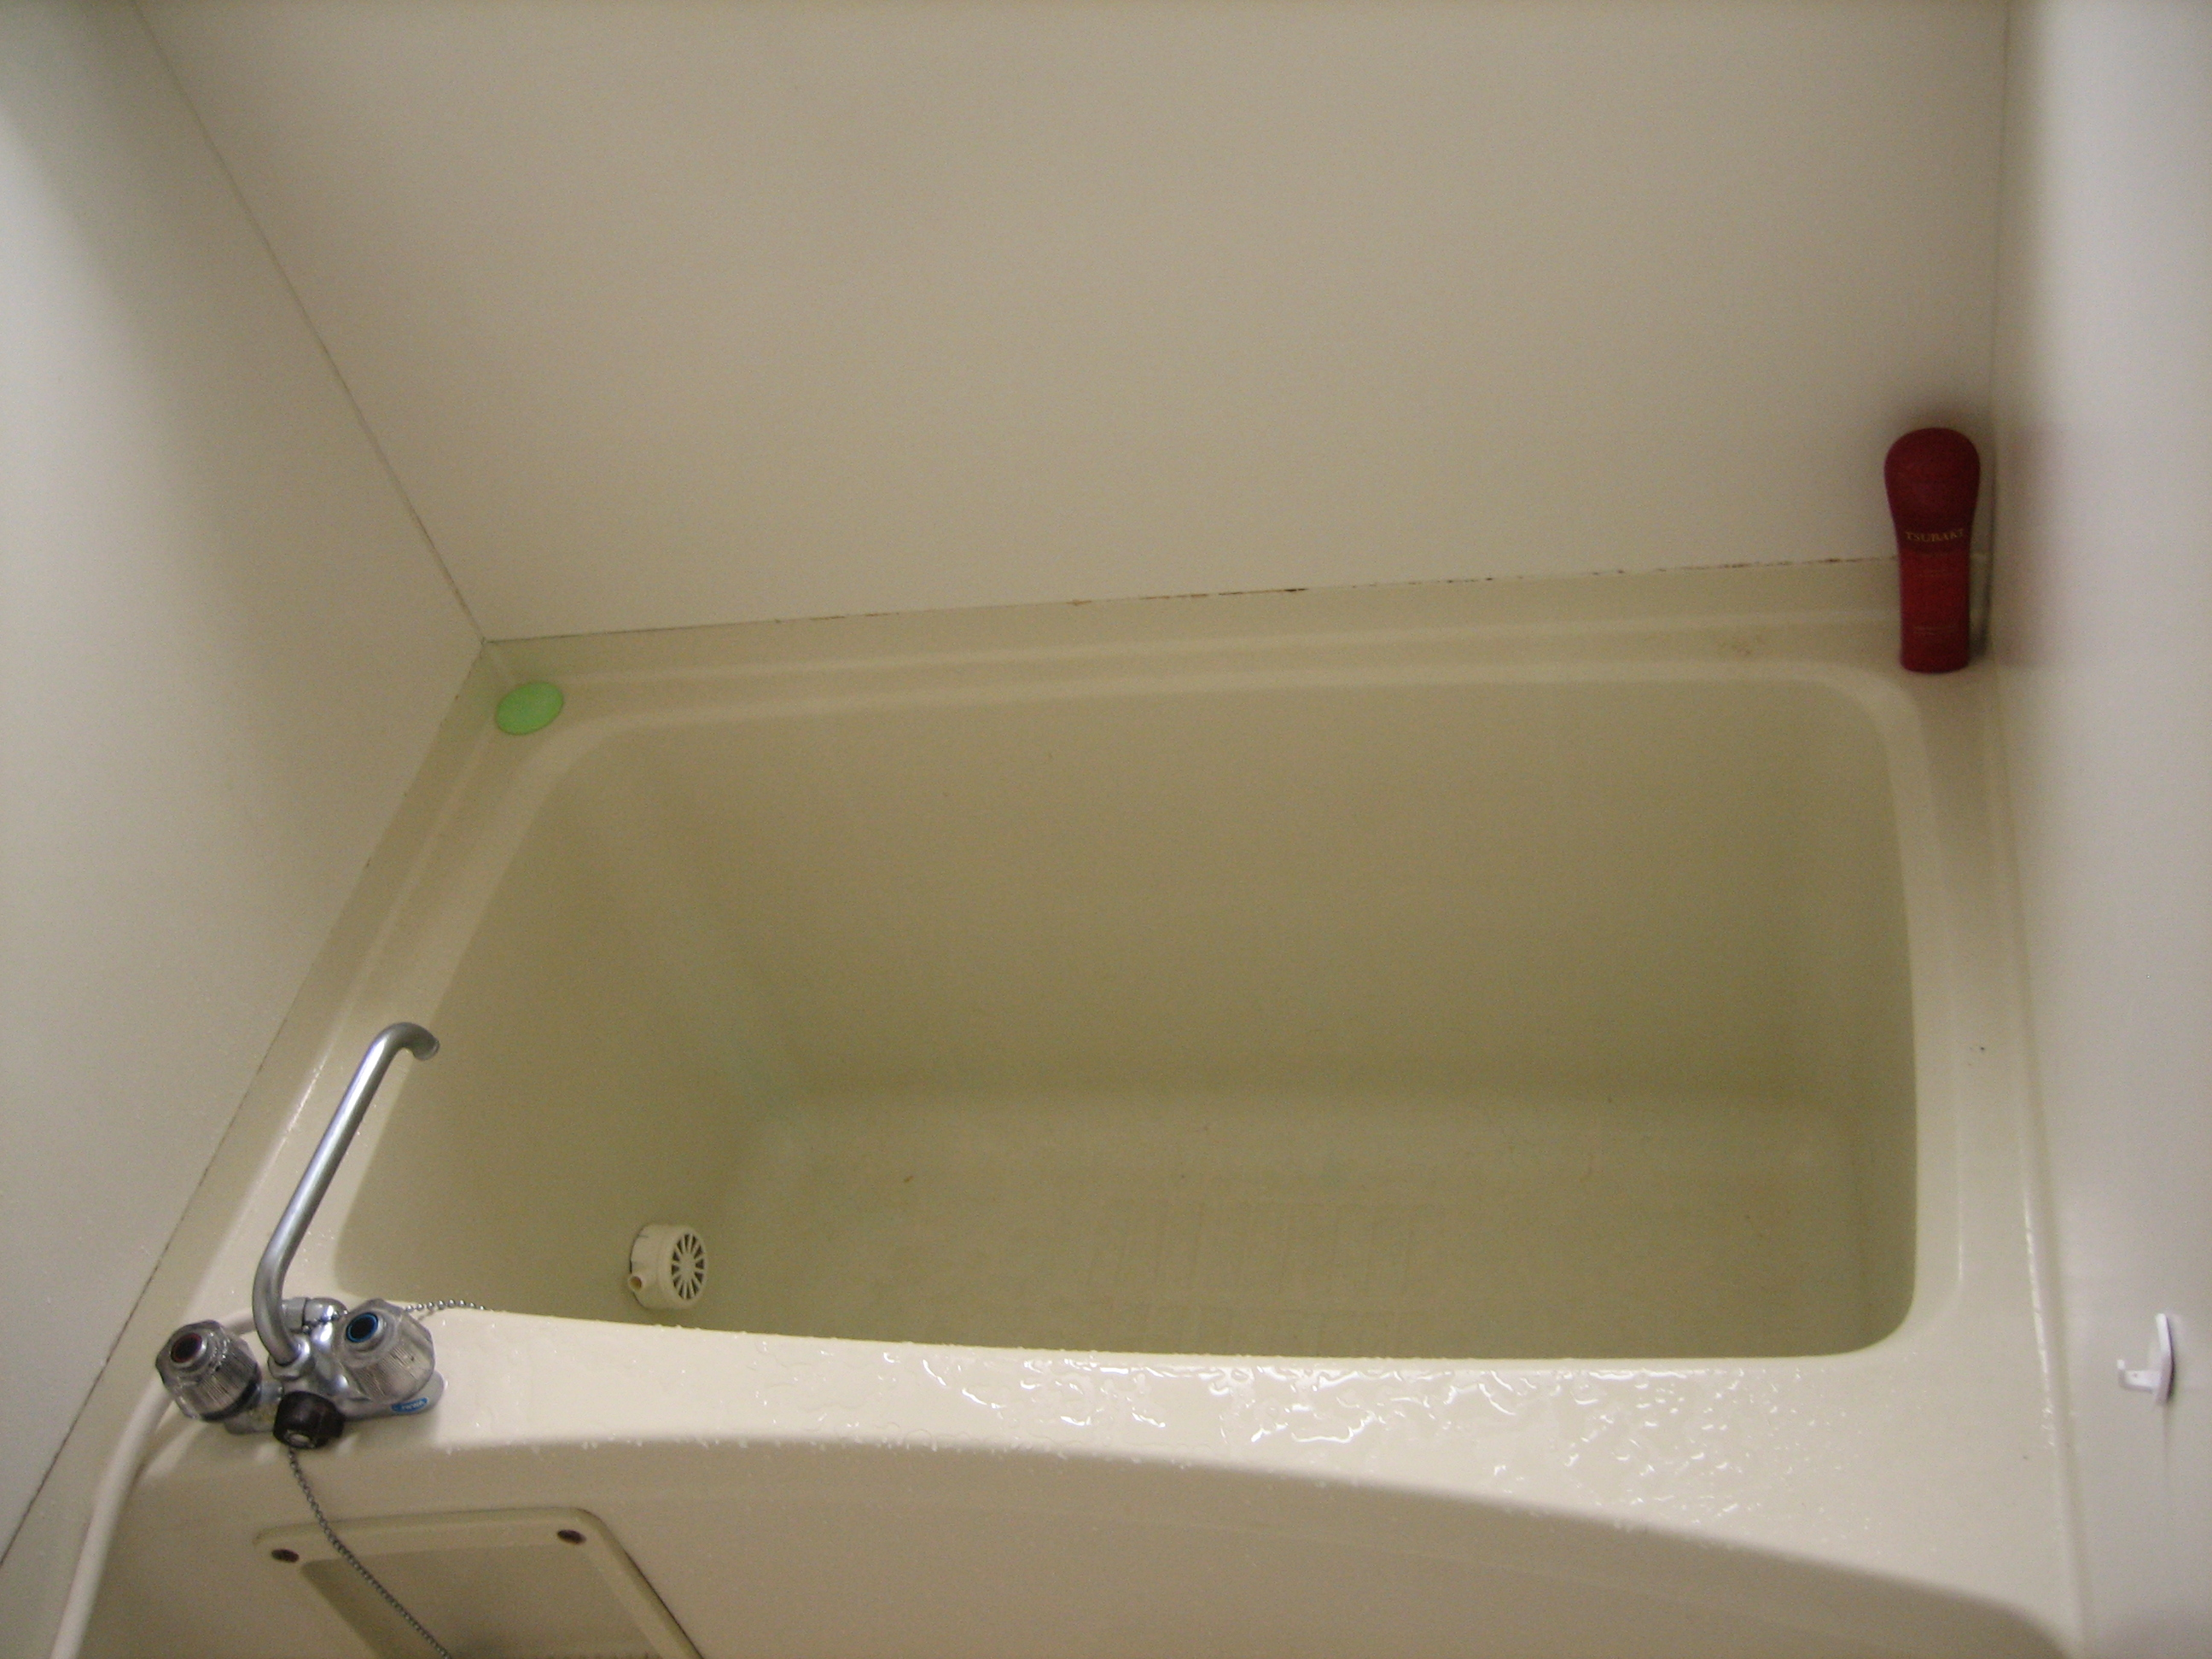 Small japanese soaking tub 8 copper things to match your for How deep is a normal bathtub